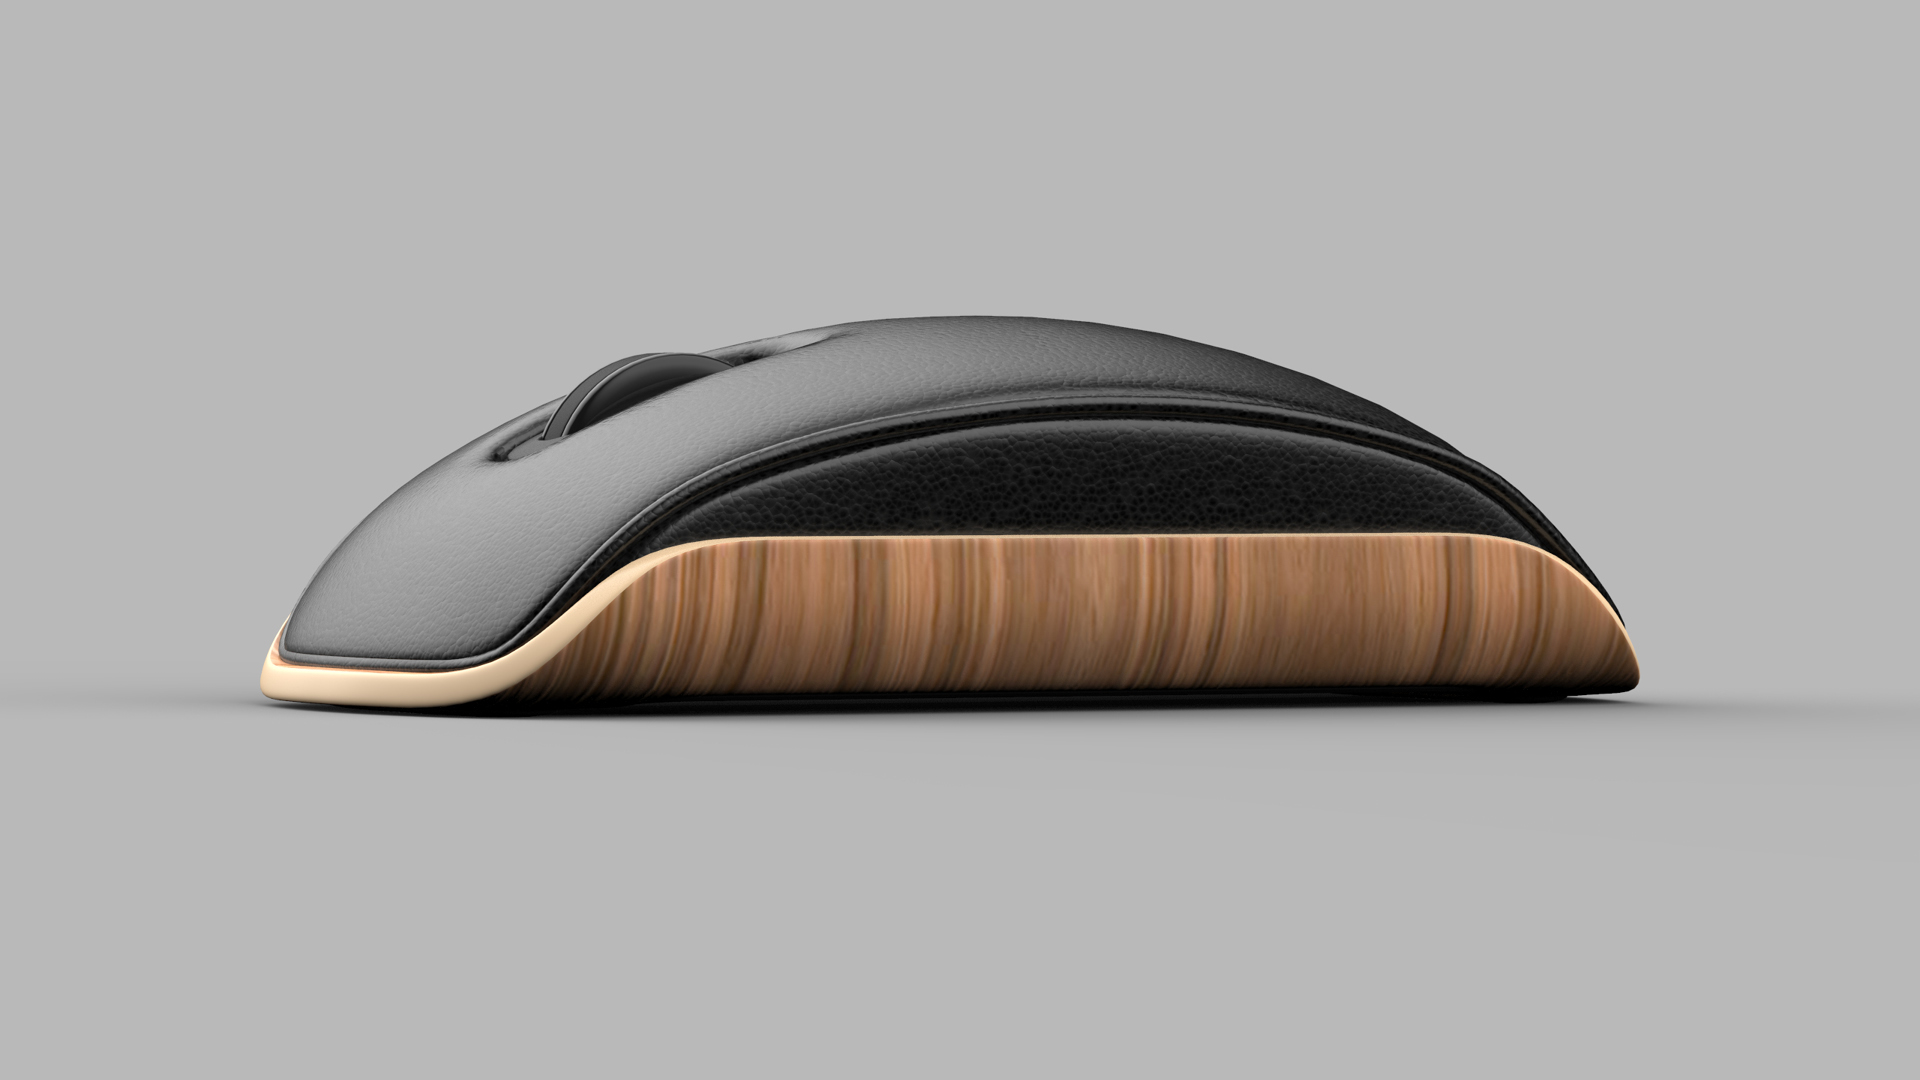 The lounge mouse concept by Shane Chen is inspired by the Eames Chair